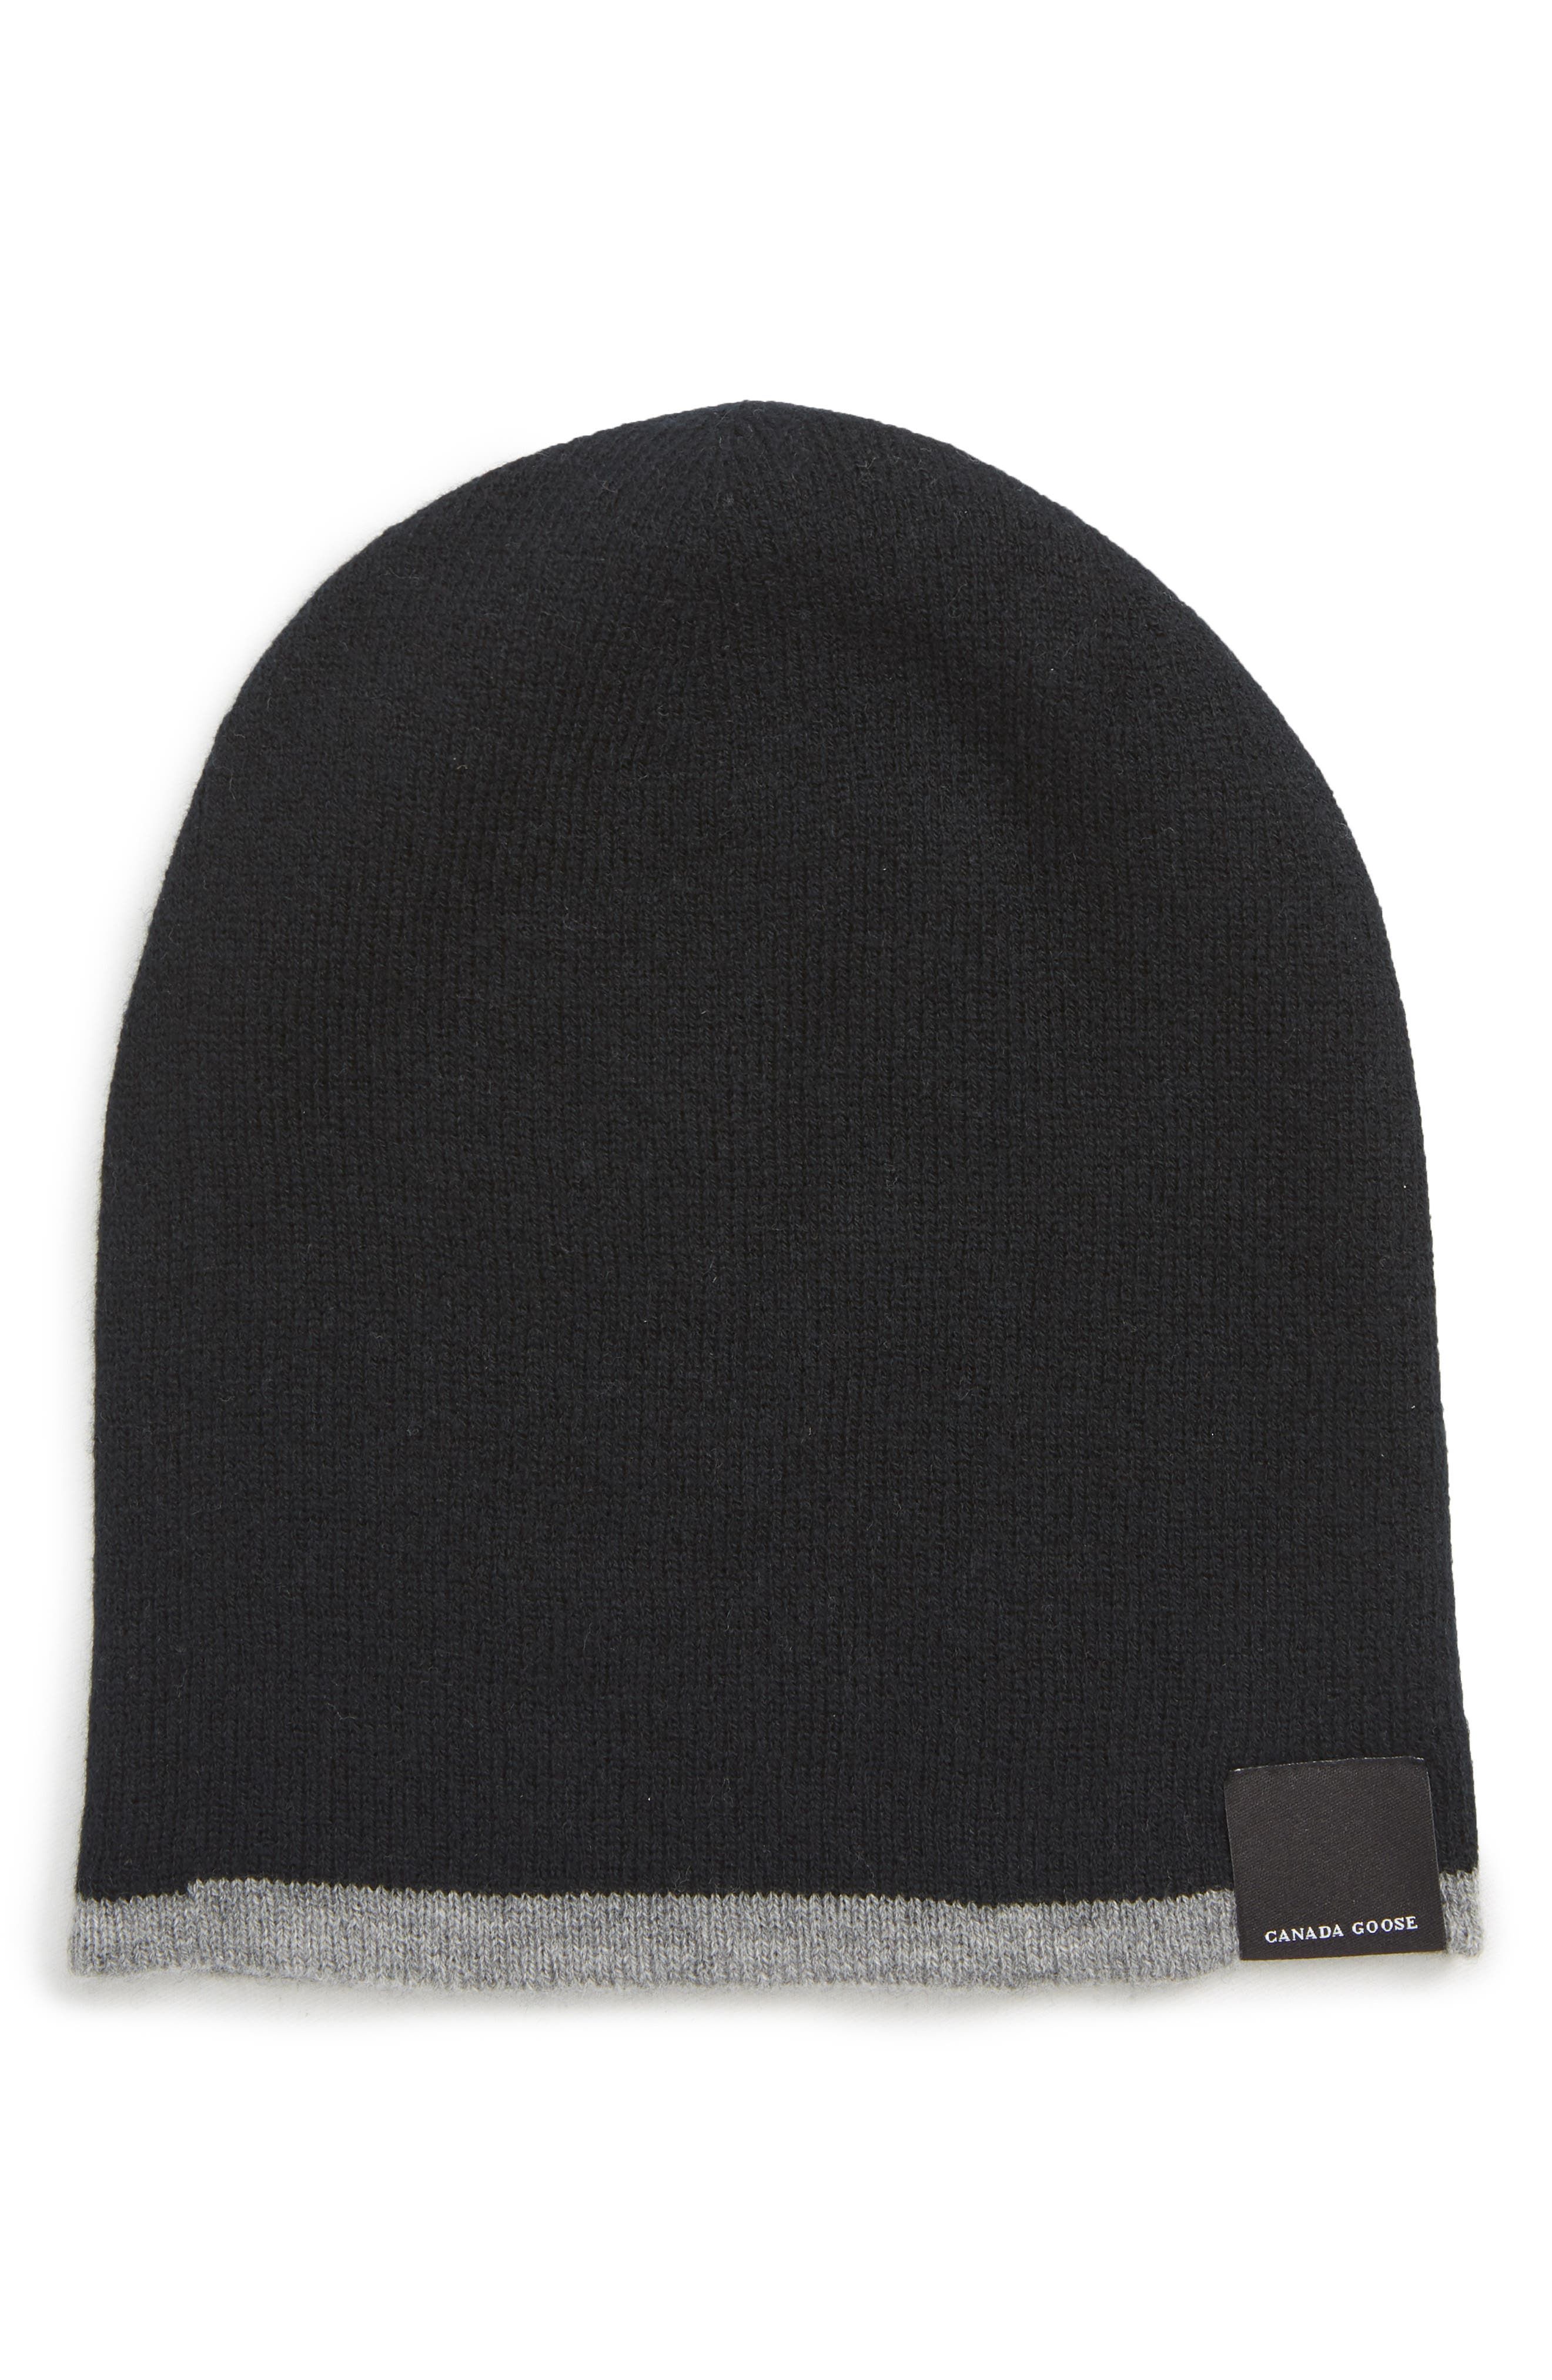 Men'S Reversible Wool Toque Beanie Hat in Black